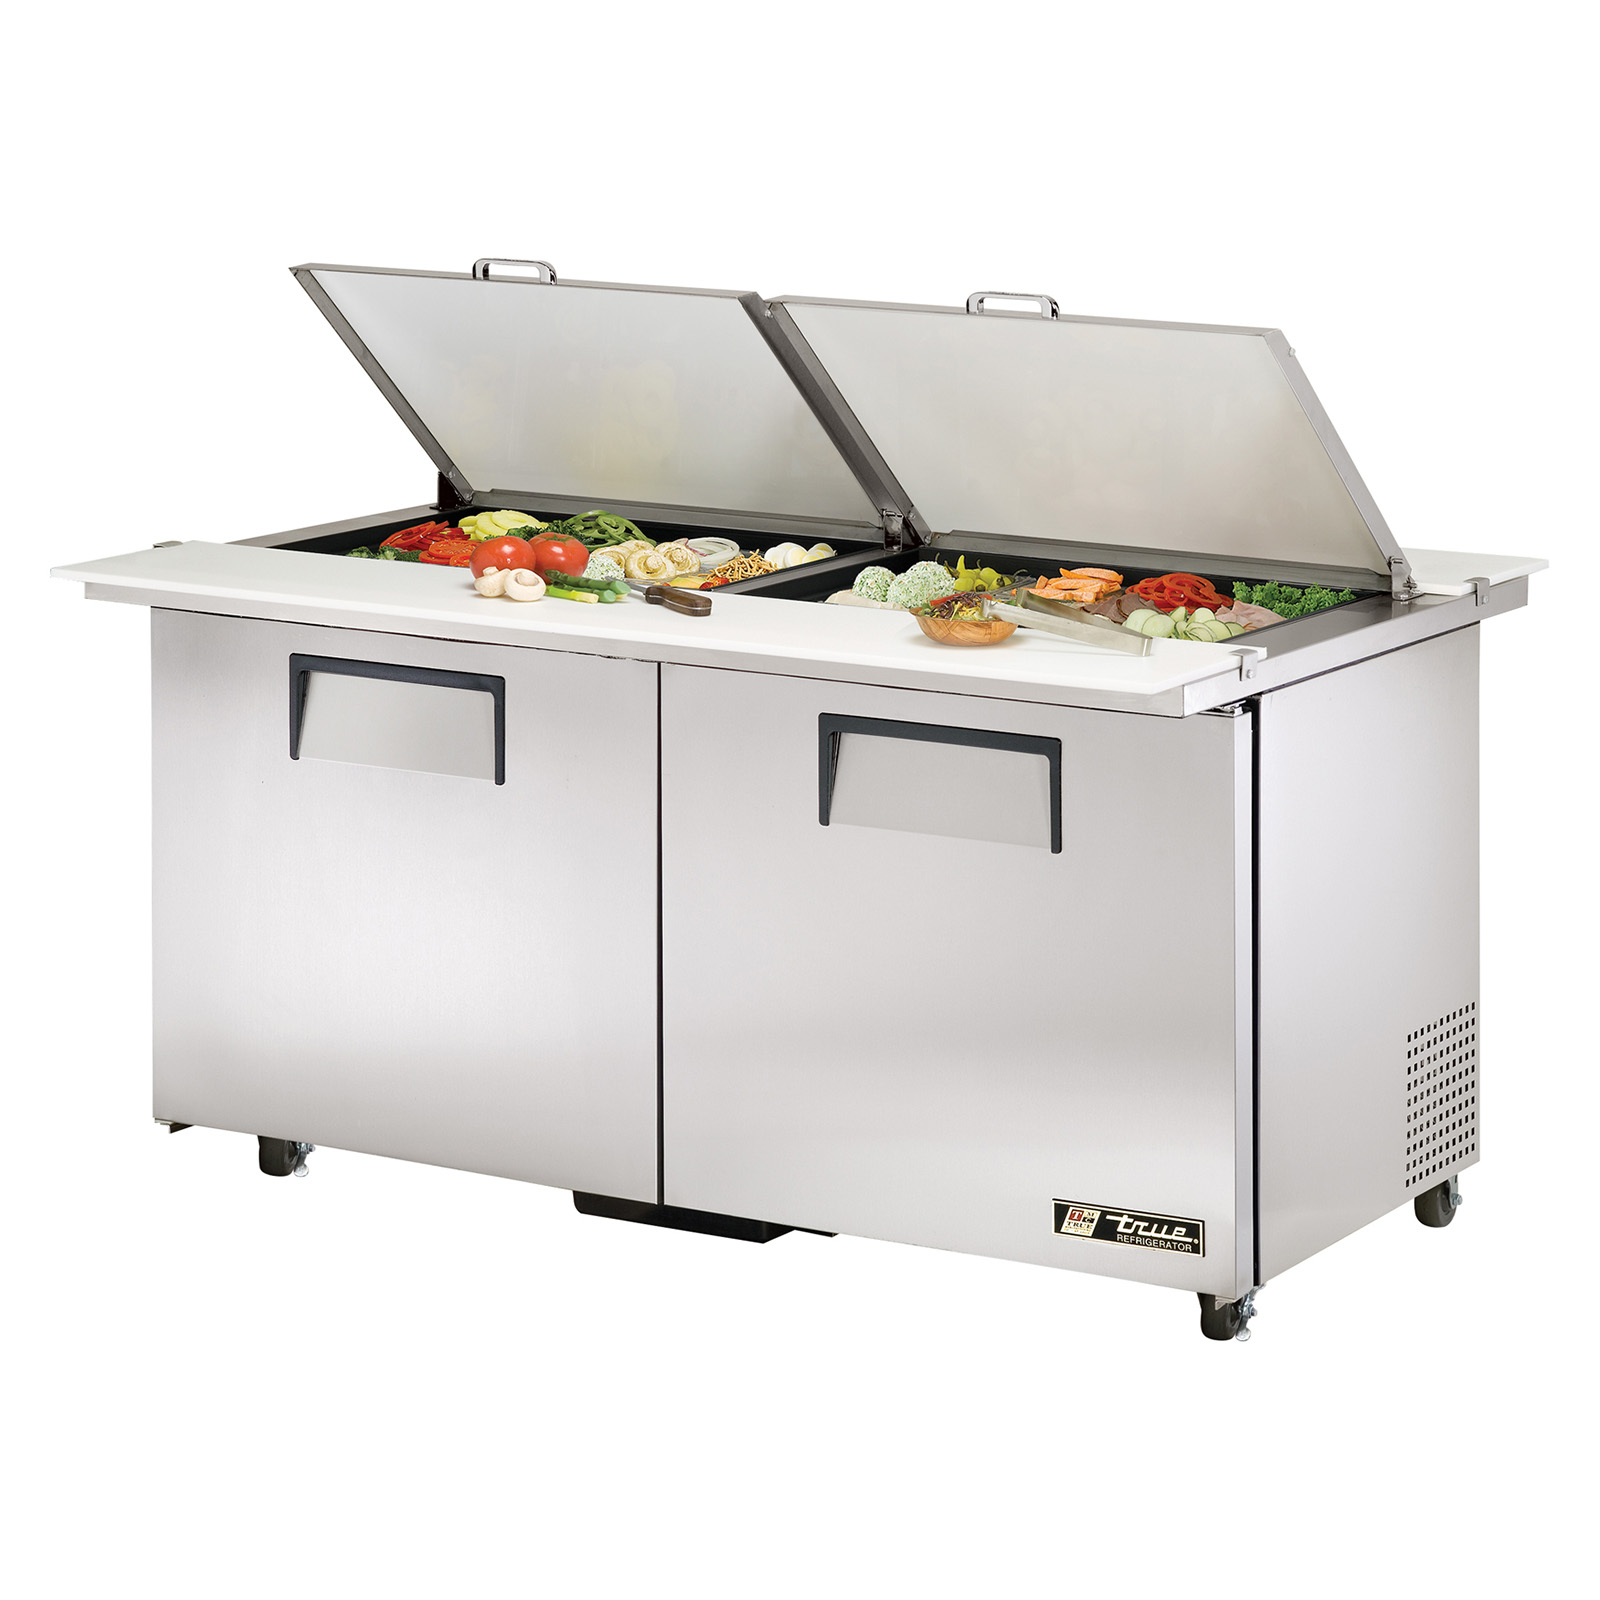 TSSU-60-24M-B-DS-ST-ADA True - ADA Compliant Dual Side Mega Top Sandwich/Salad Unit (24) 1/6 (4